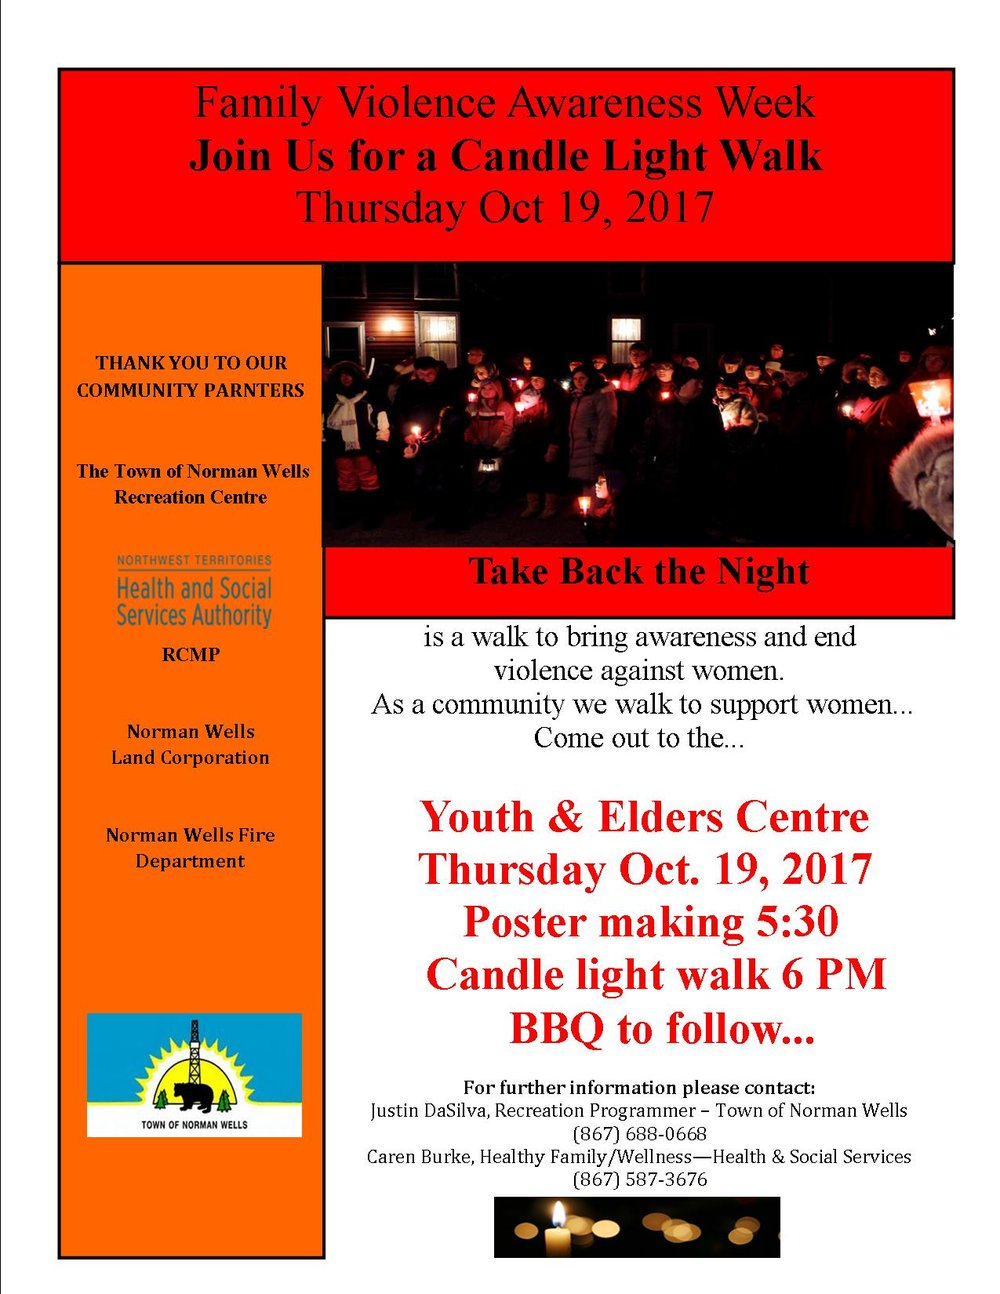 Poster Candle light walk Oct 19 2017.jpg